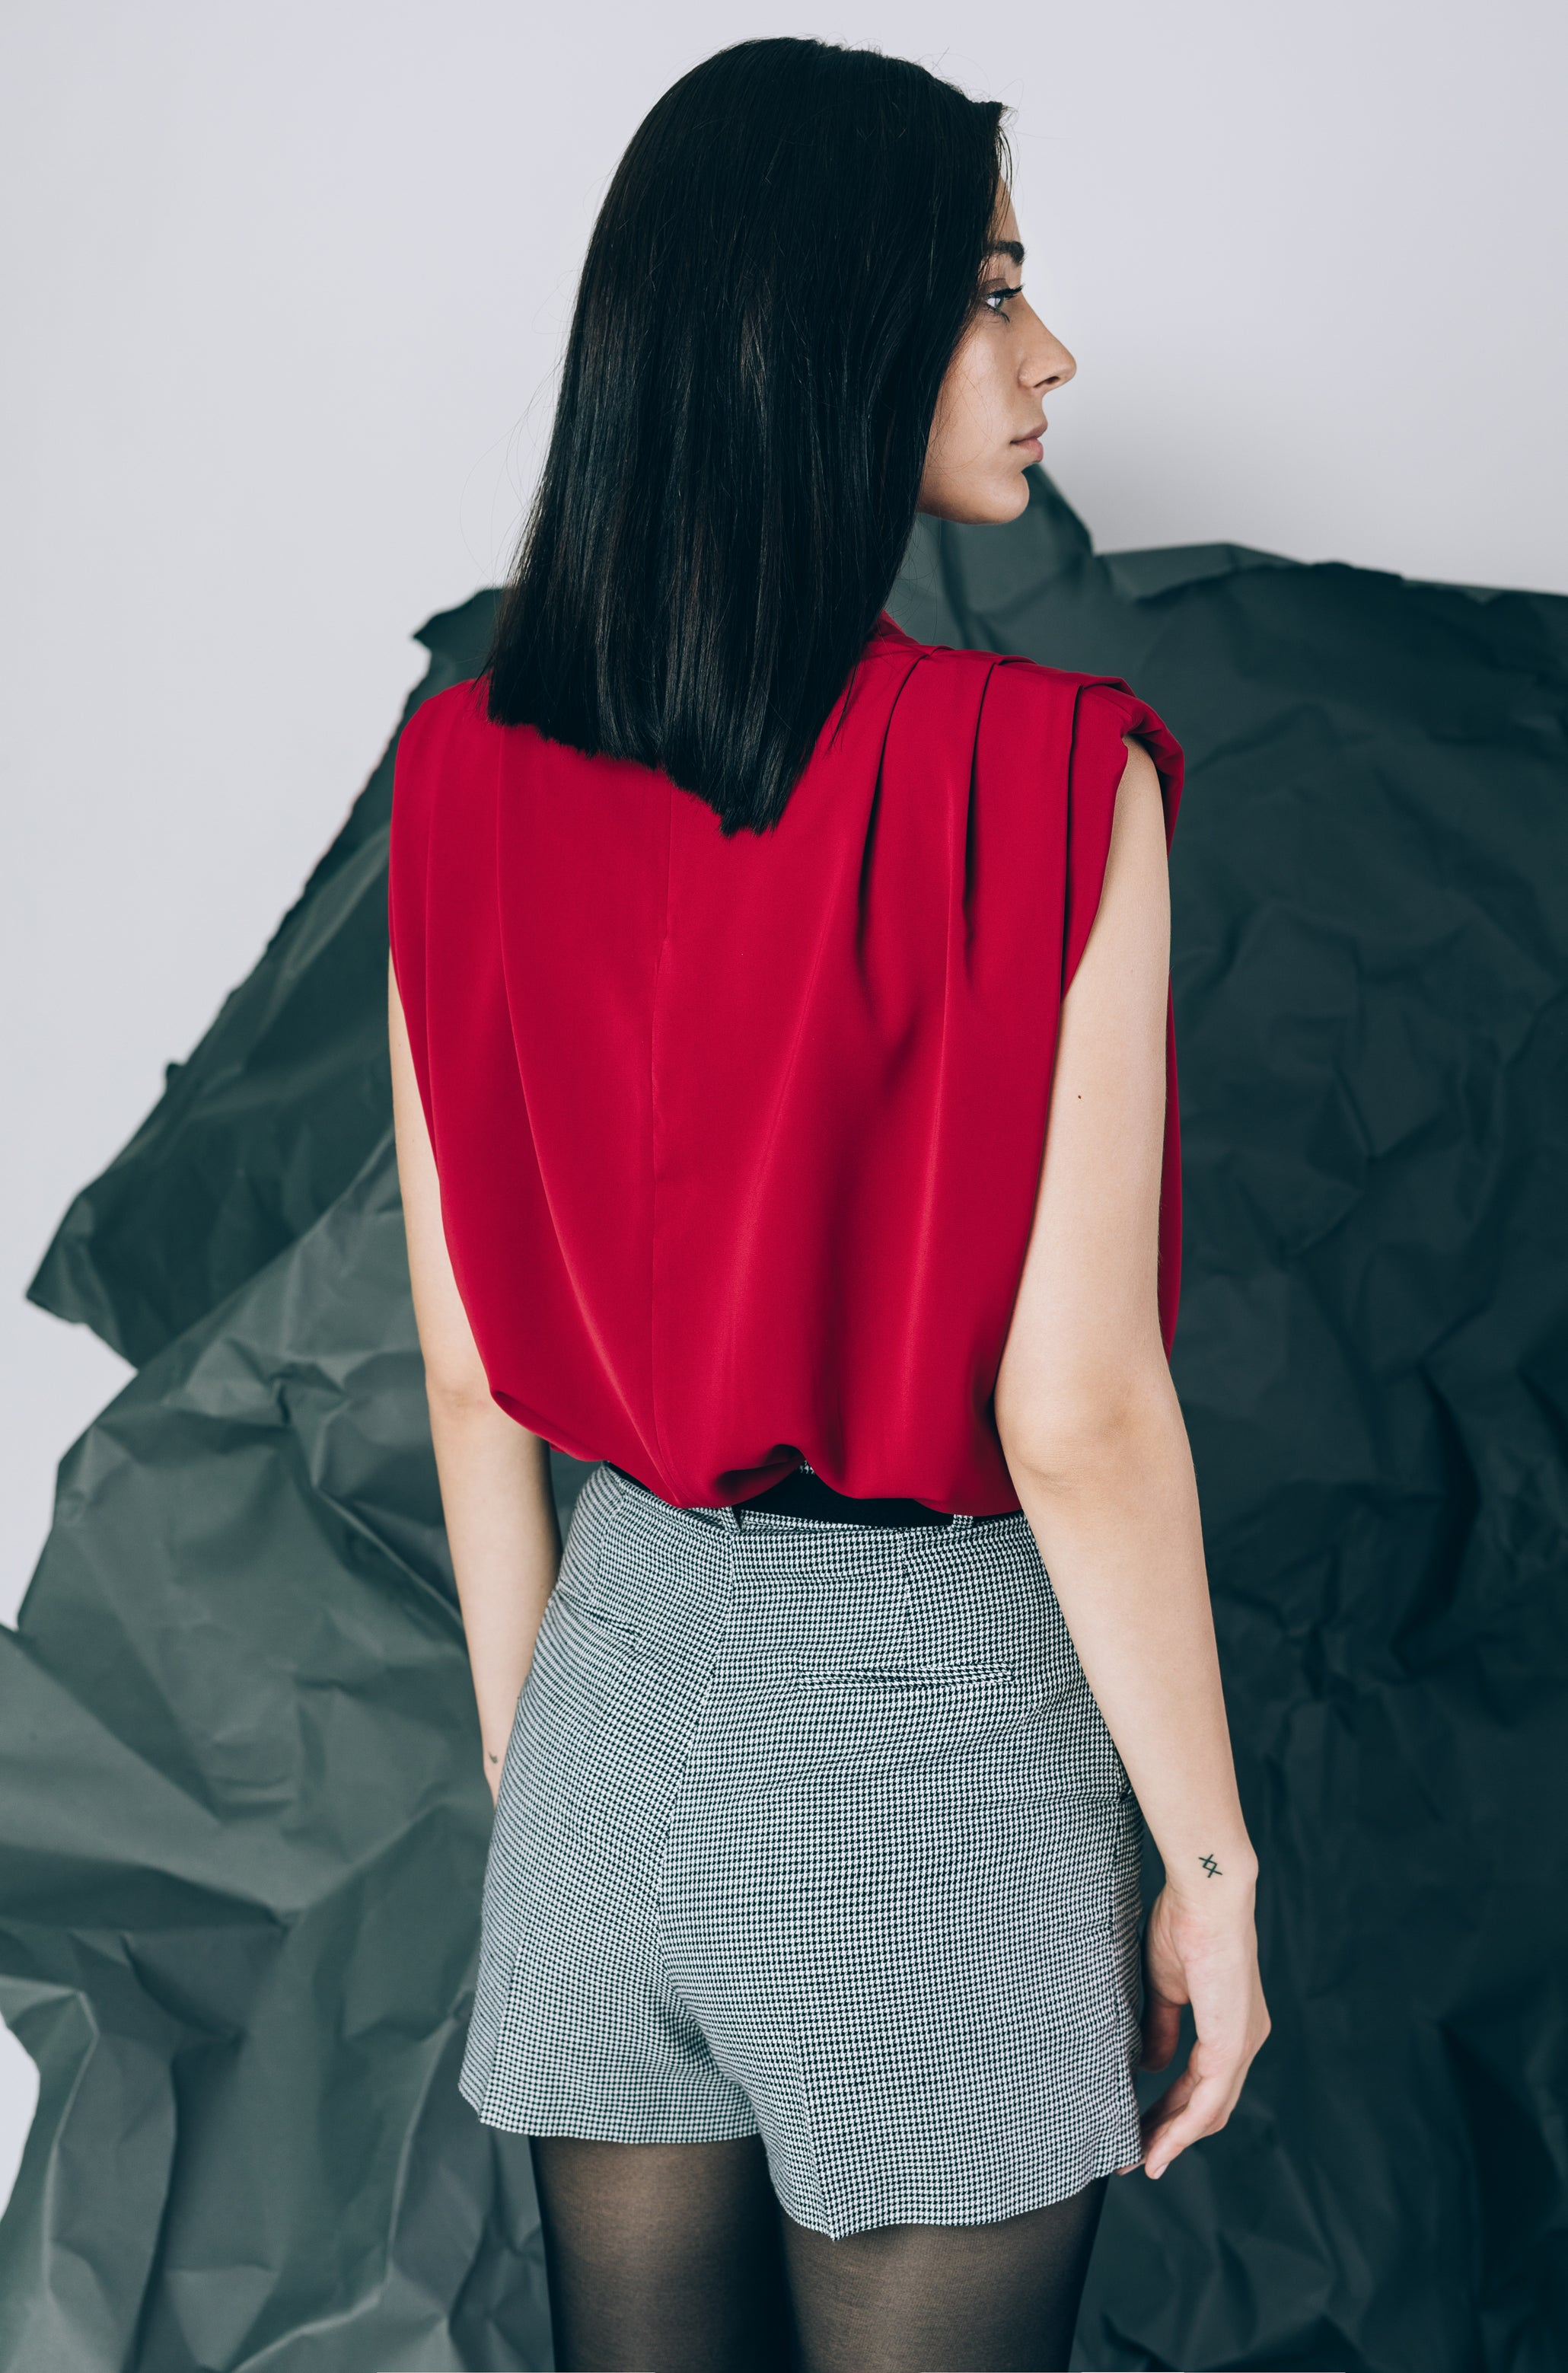 Cowl-neck top with shoulder pads